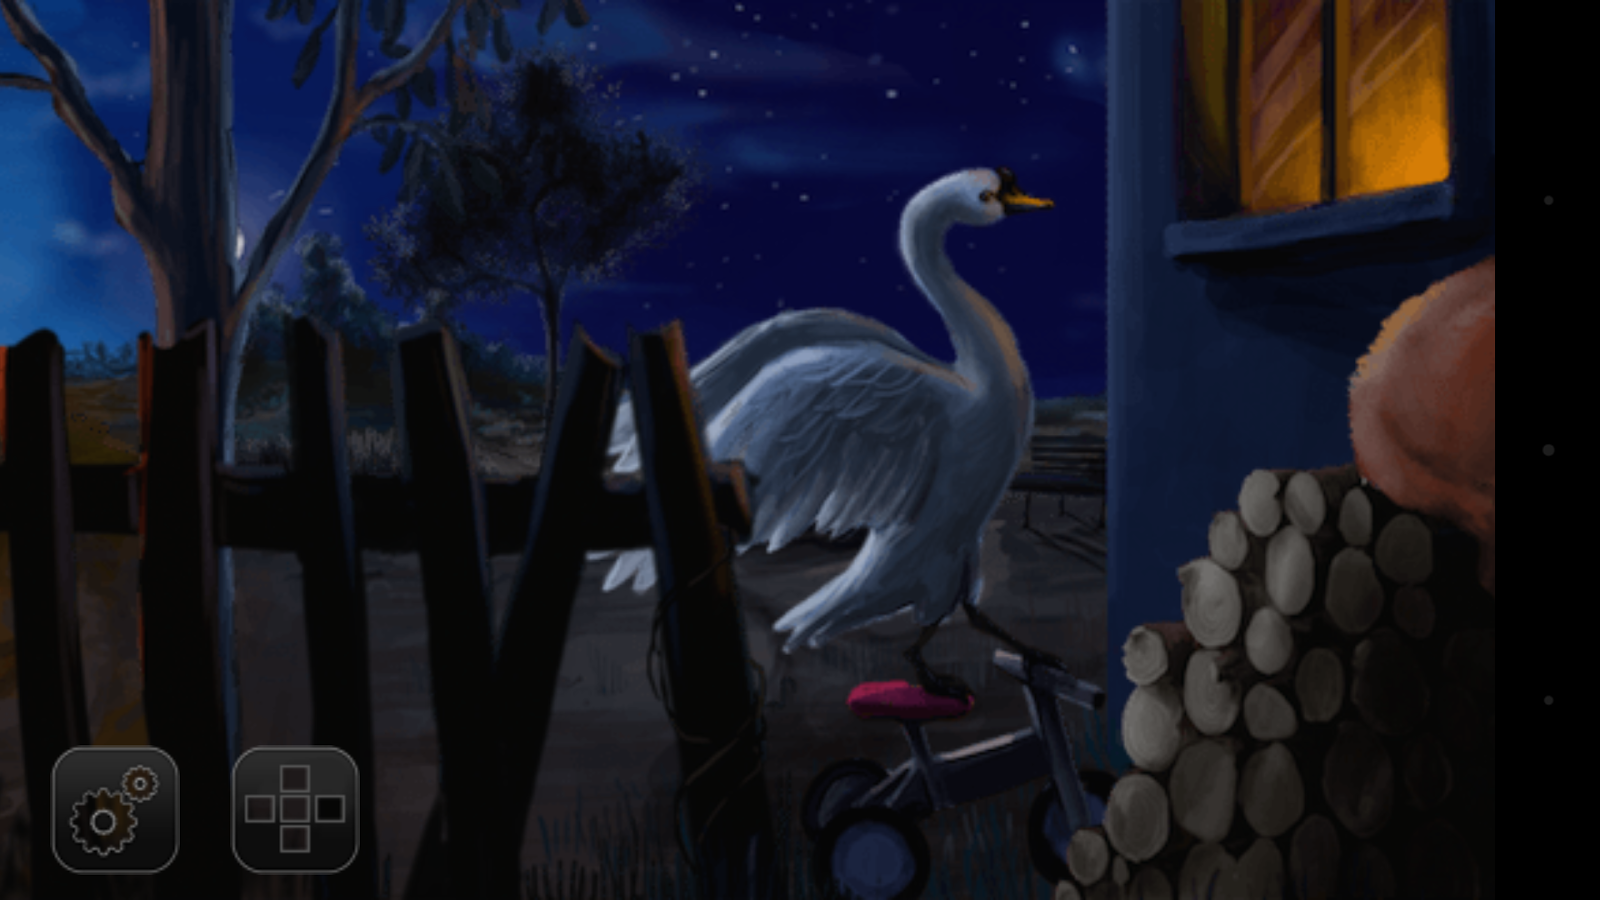 Where the Swans Sleep - children's story book- screenshot